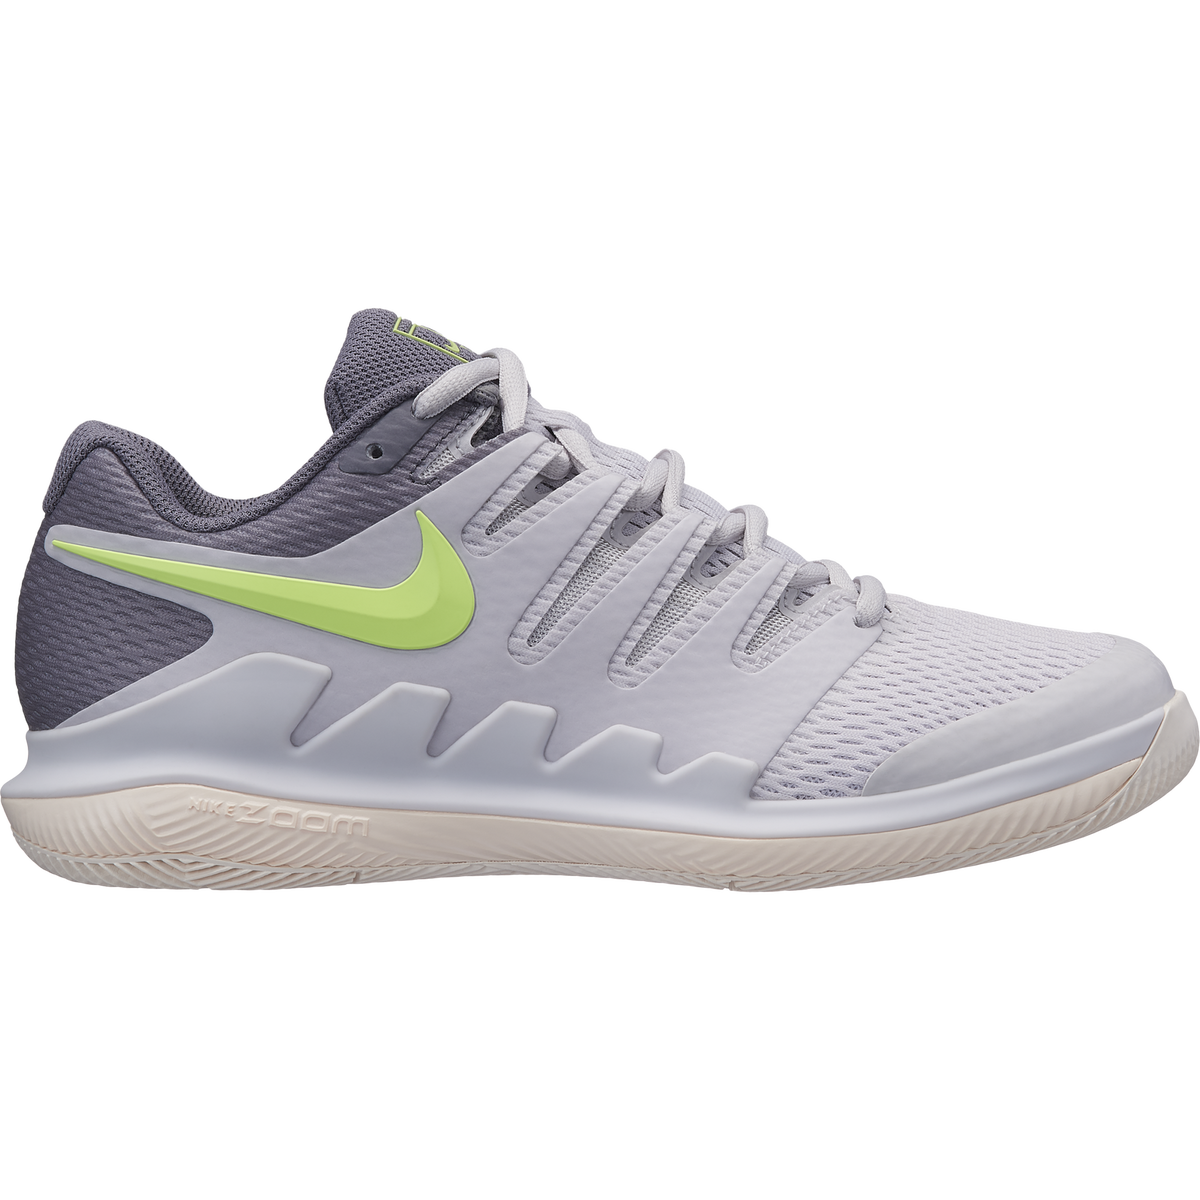 d2703f8054917 Images. Nike Air Zoom Vapor X Women  39 s Tennis Shoe ...